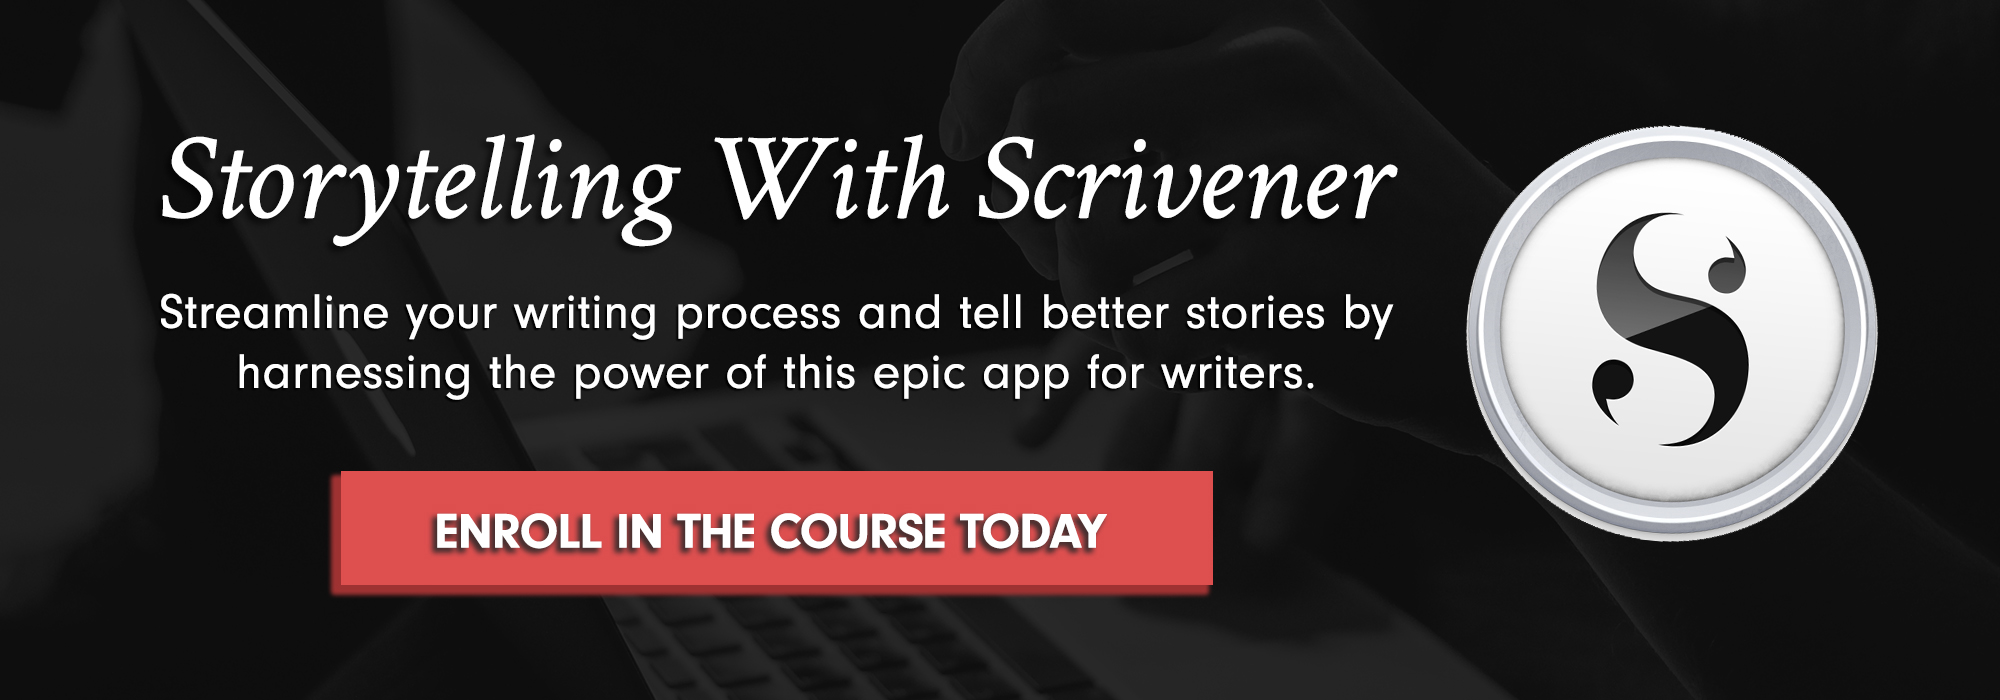 Ready to streamline your writing process and tell better stories? Enroll in Storytelling With Scrivener to harness the power of this epic app for writers today!